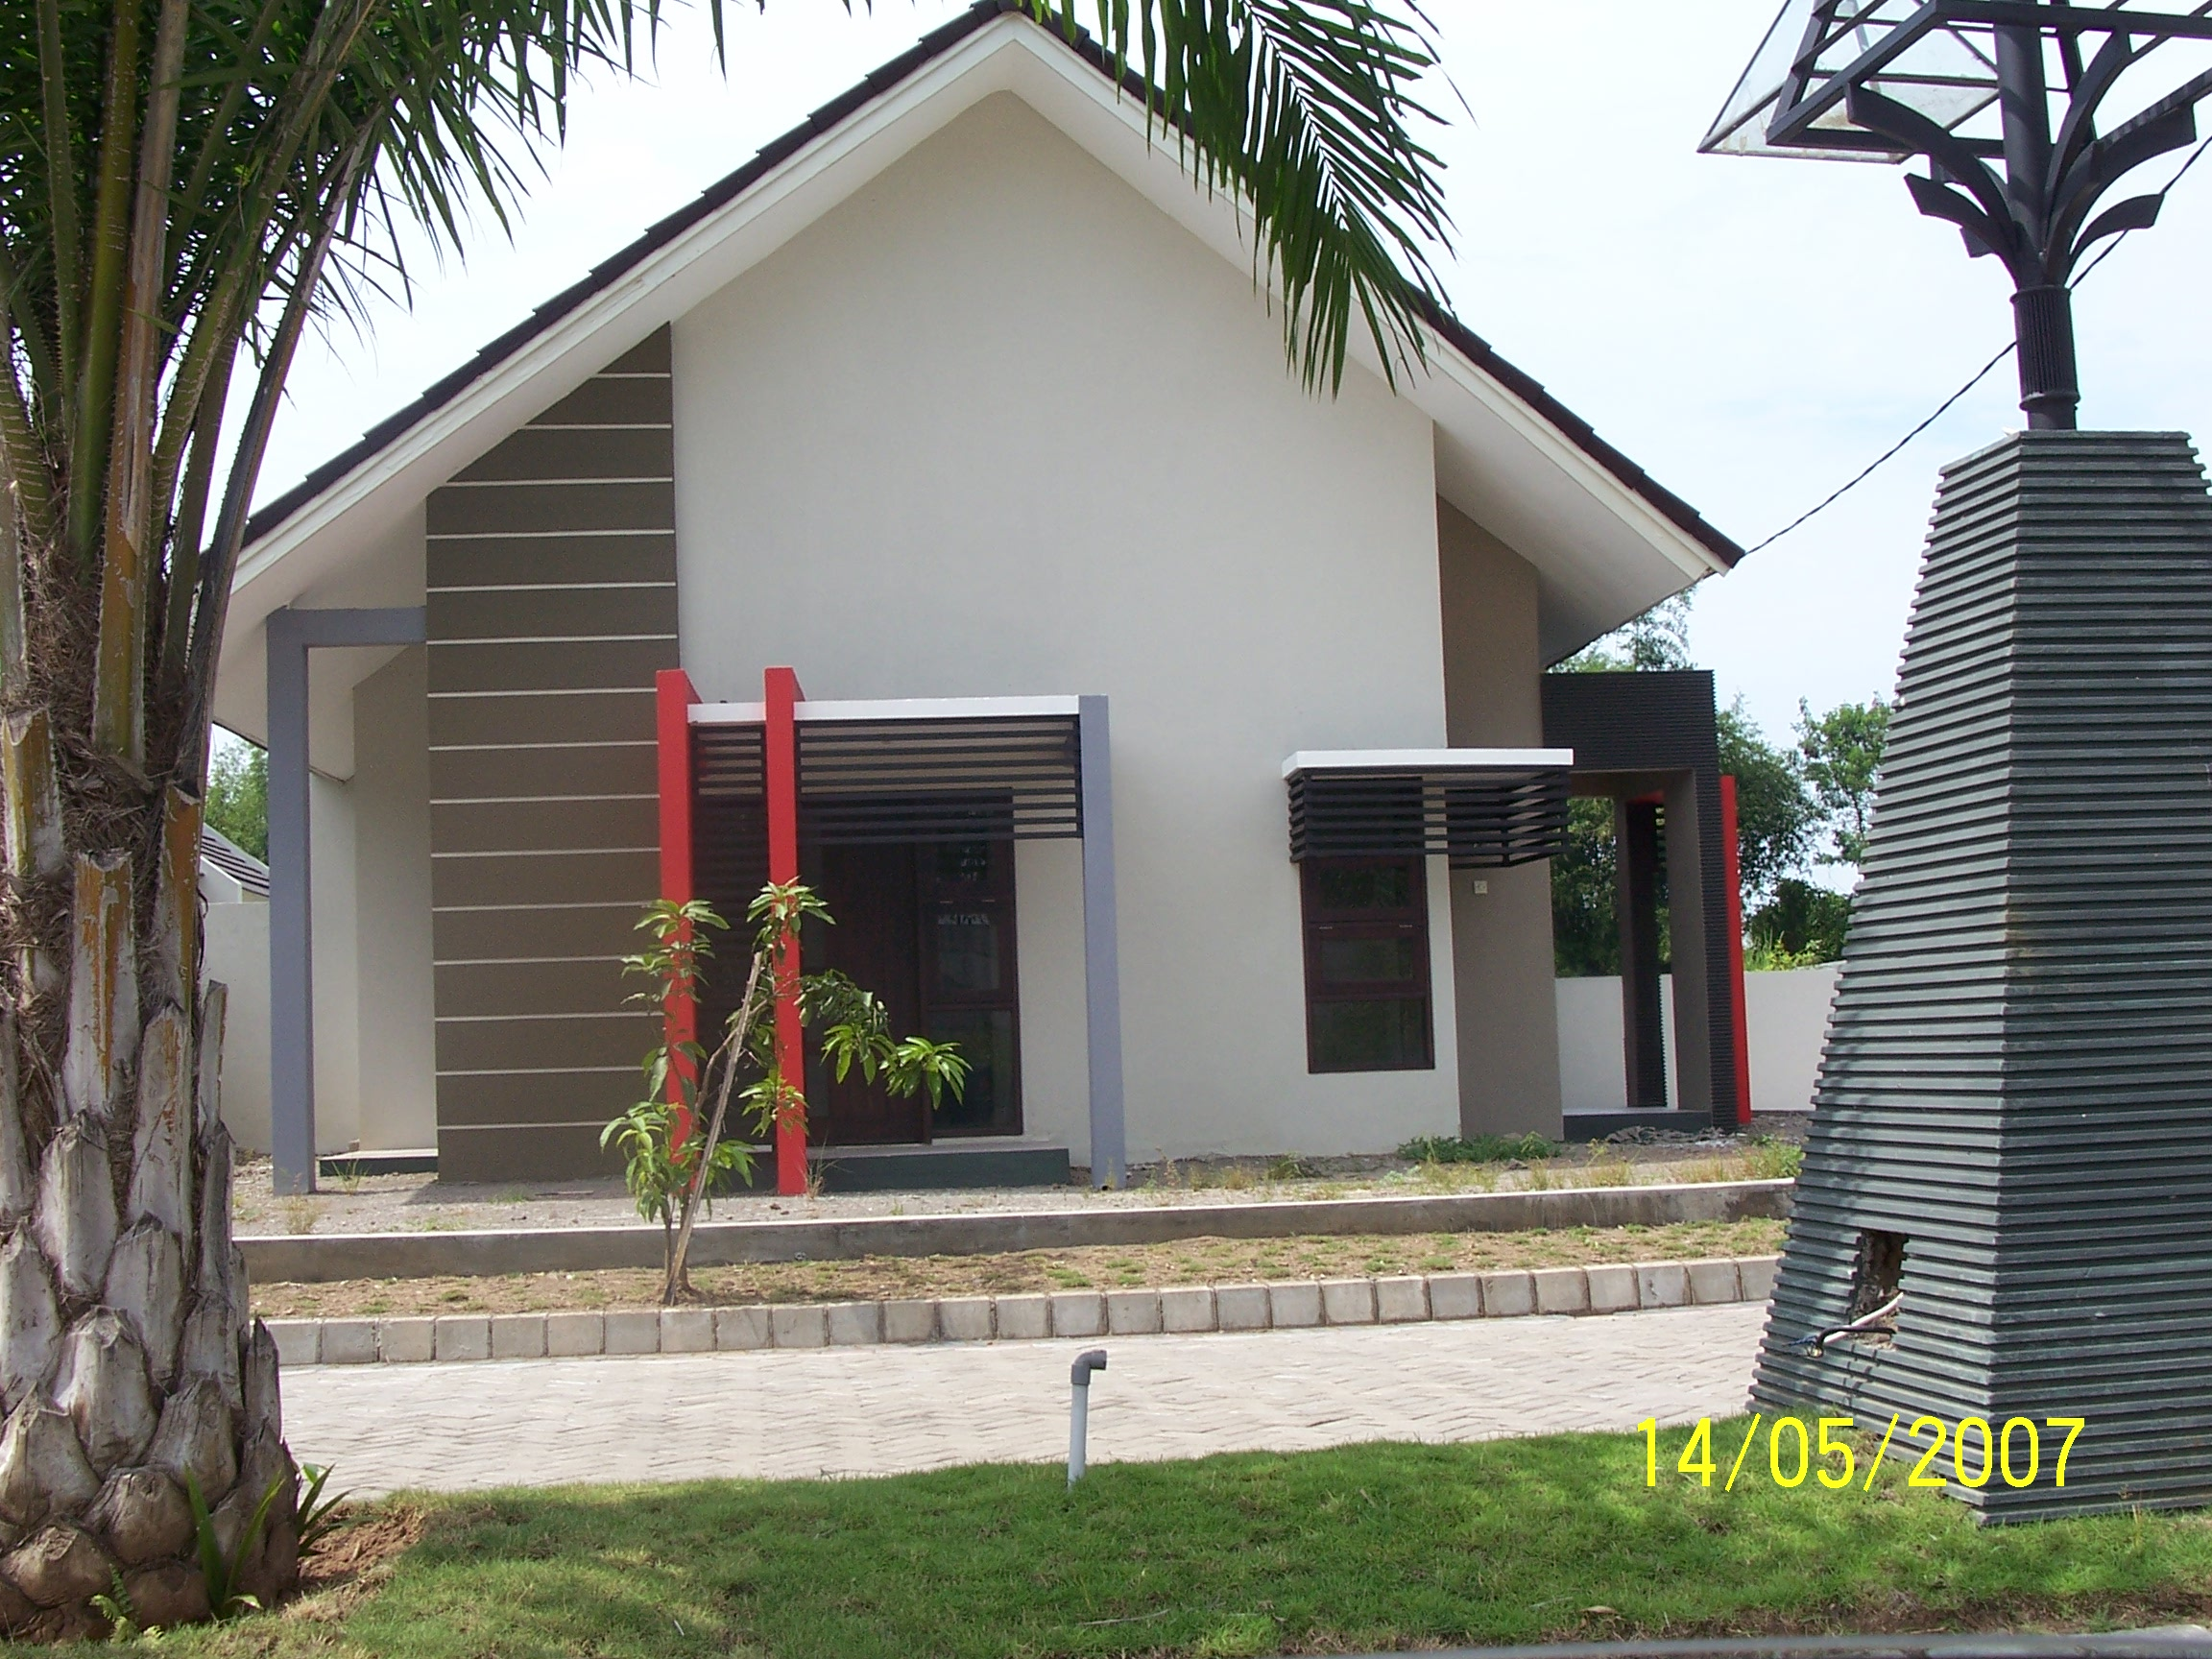 Exterior design rumah 1 pondok design - Small home outside design ...